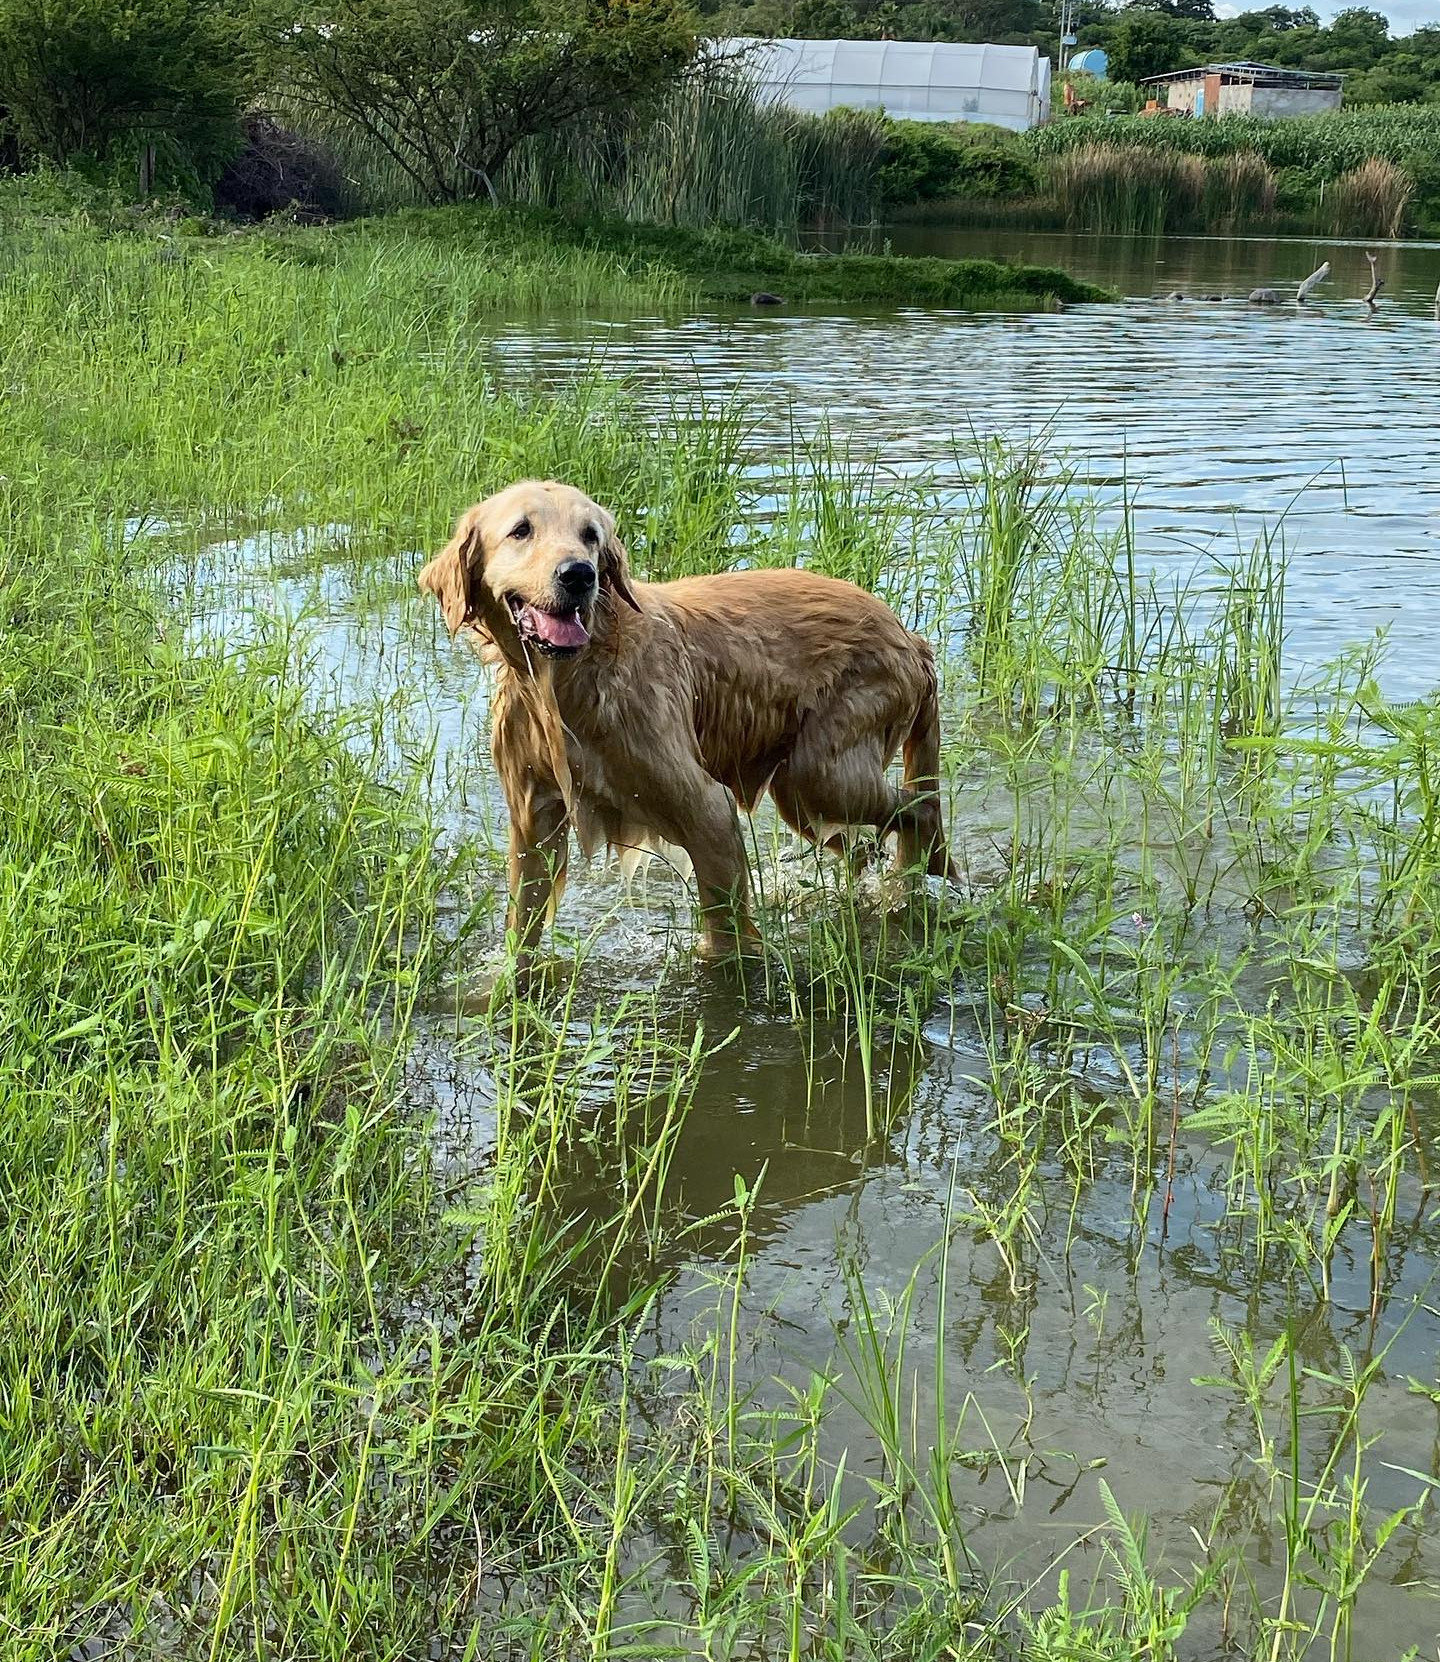 Charlie in the pond